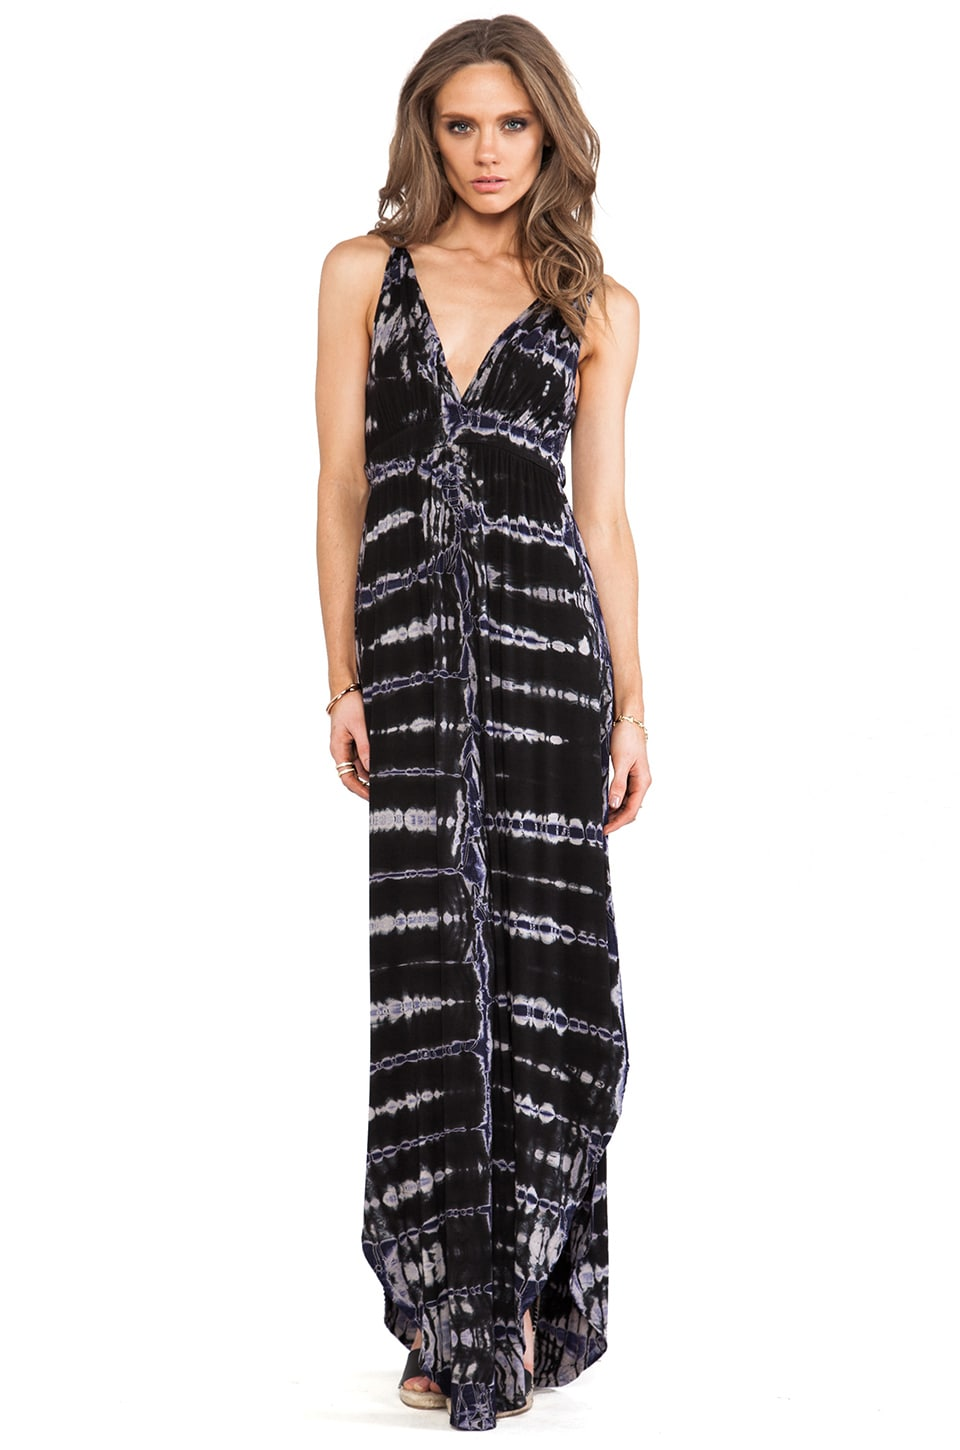 Gypsy 05 Backless Maxi Dress in Black & Blue